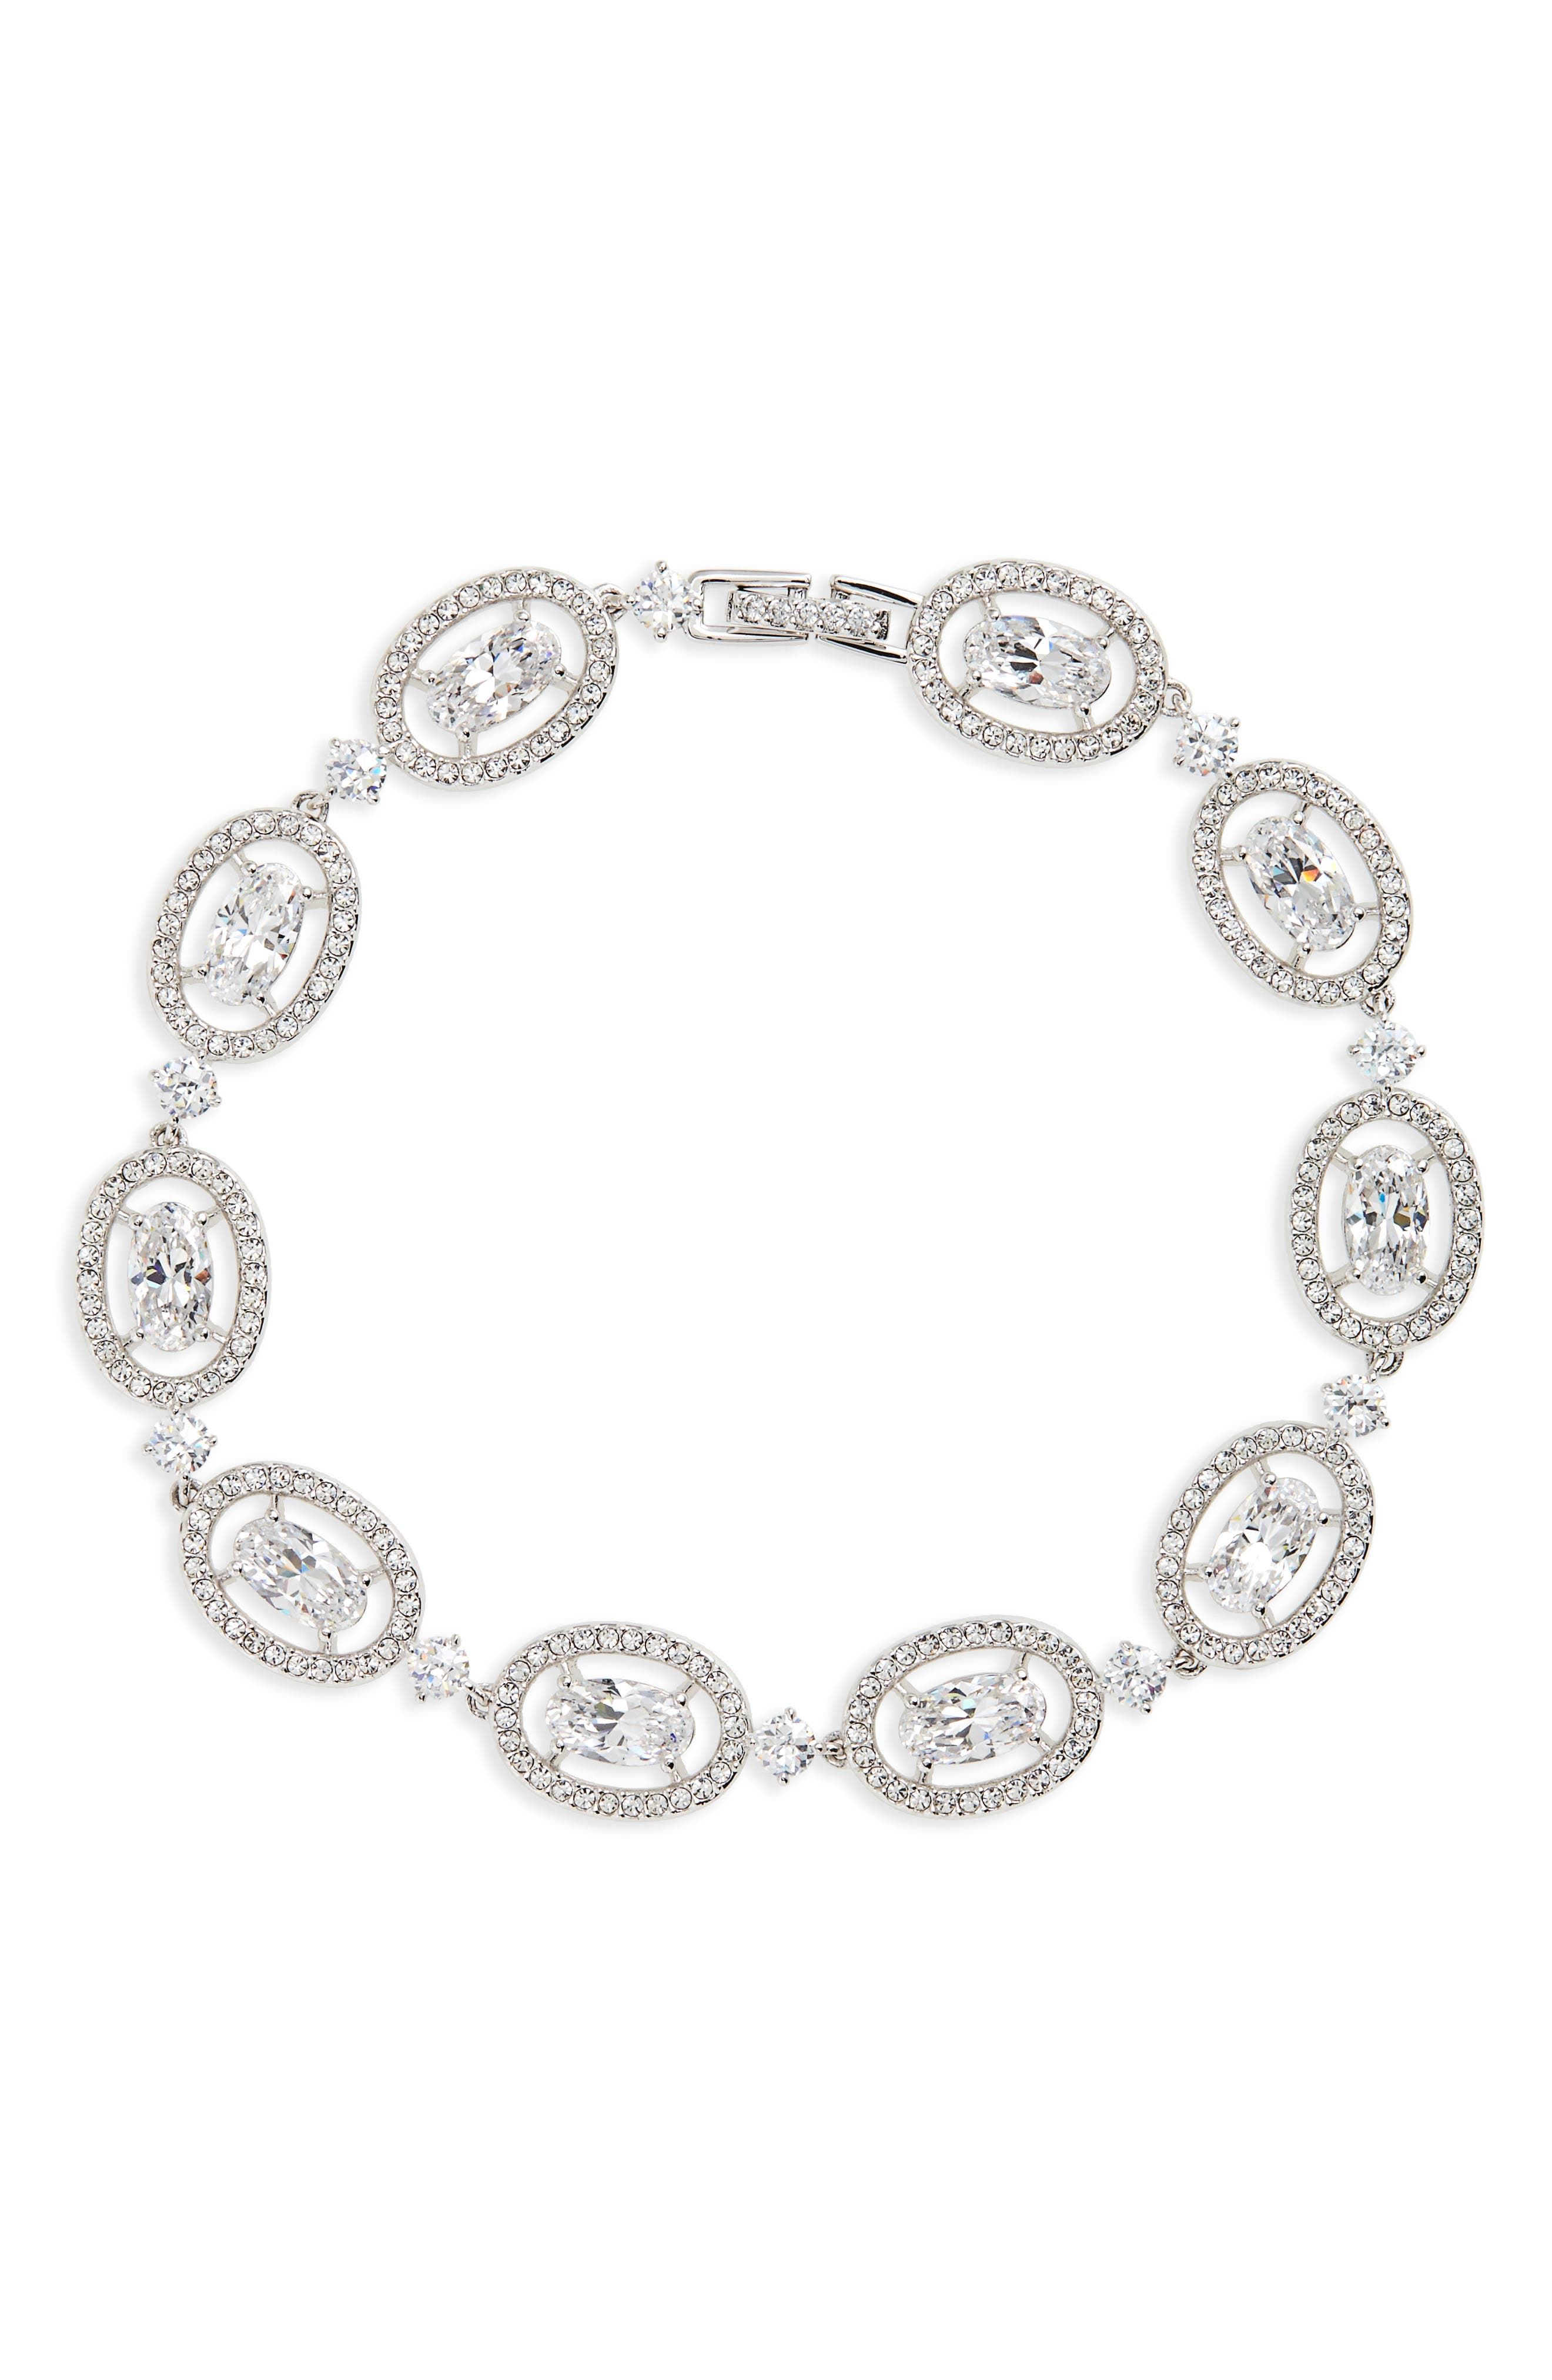 Crystal Halo Bracelet,                             Main thumbnail 1, color,                             Silver